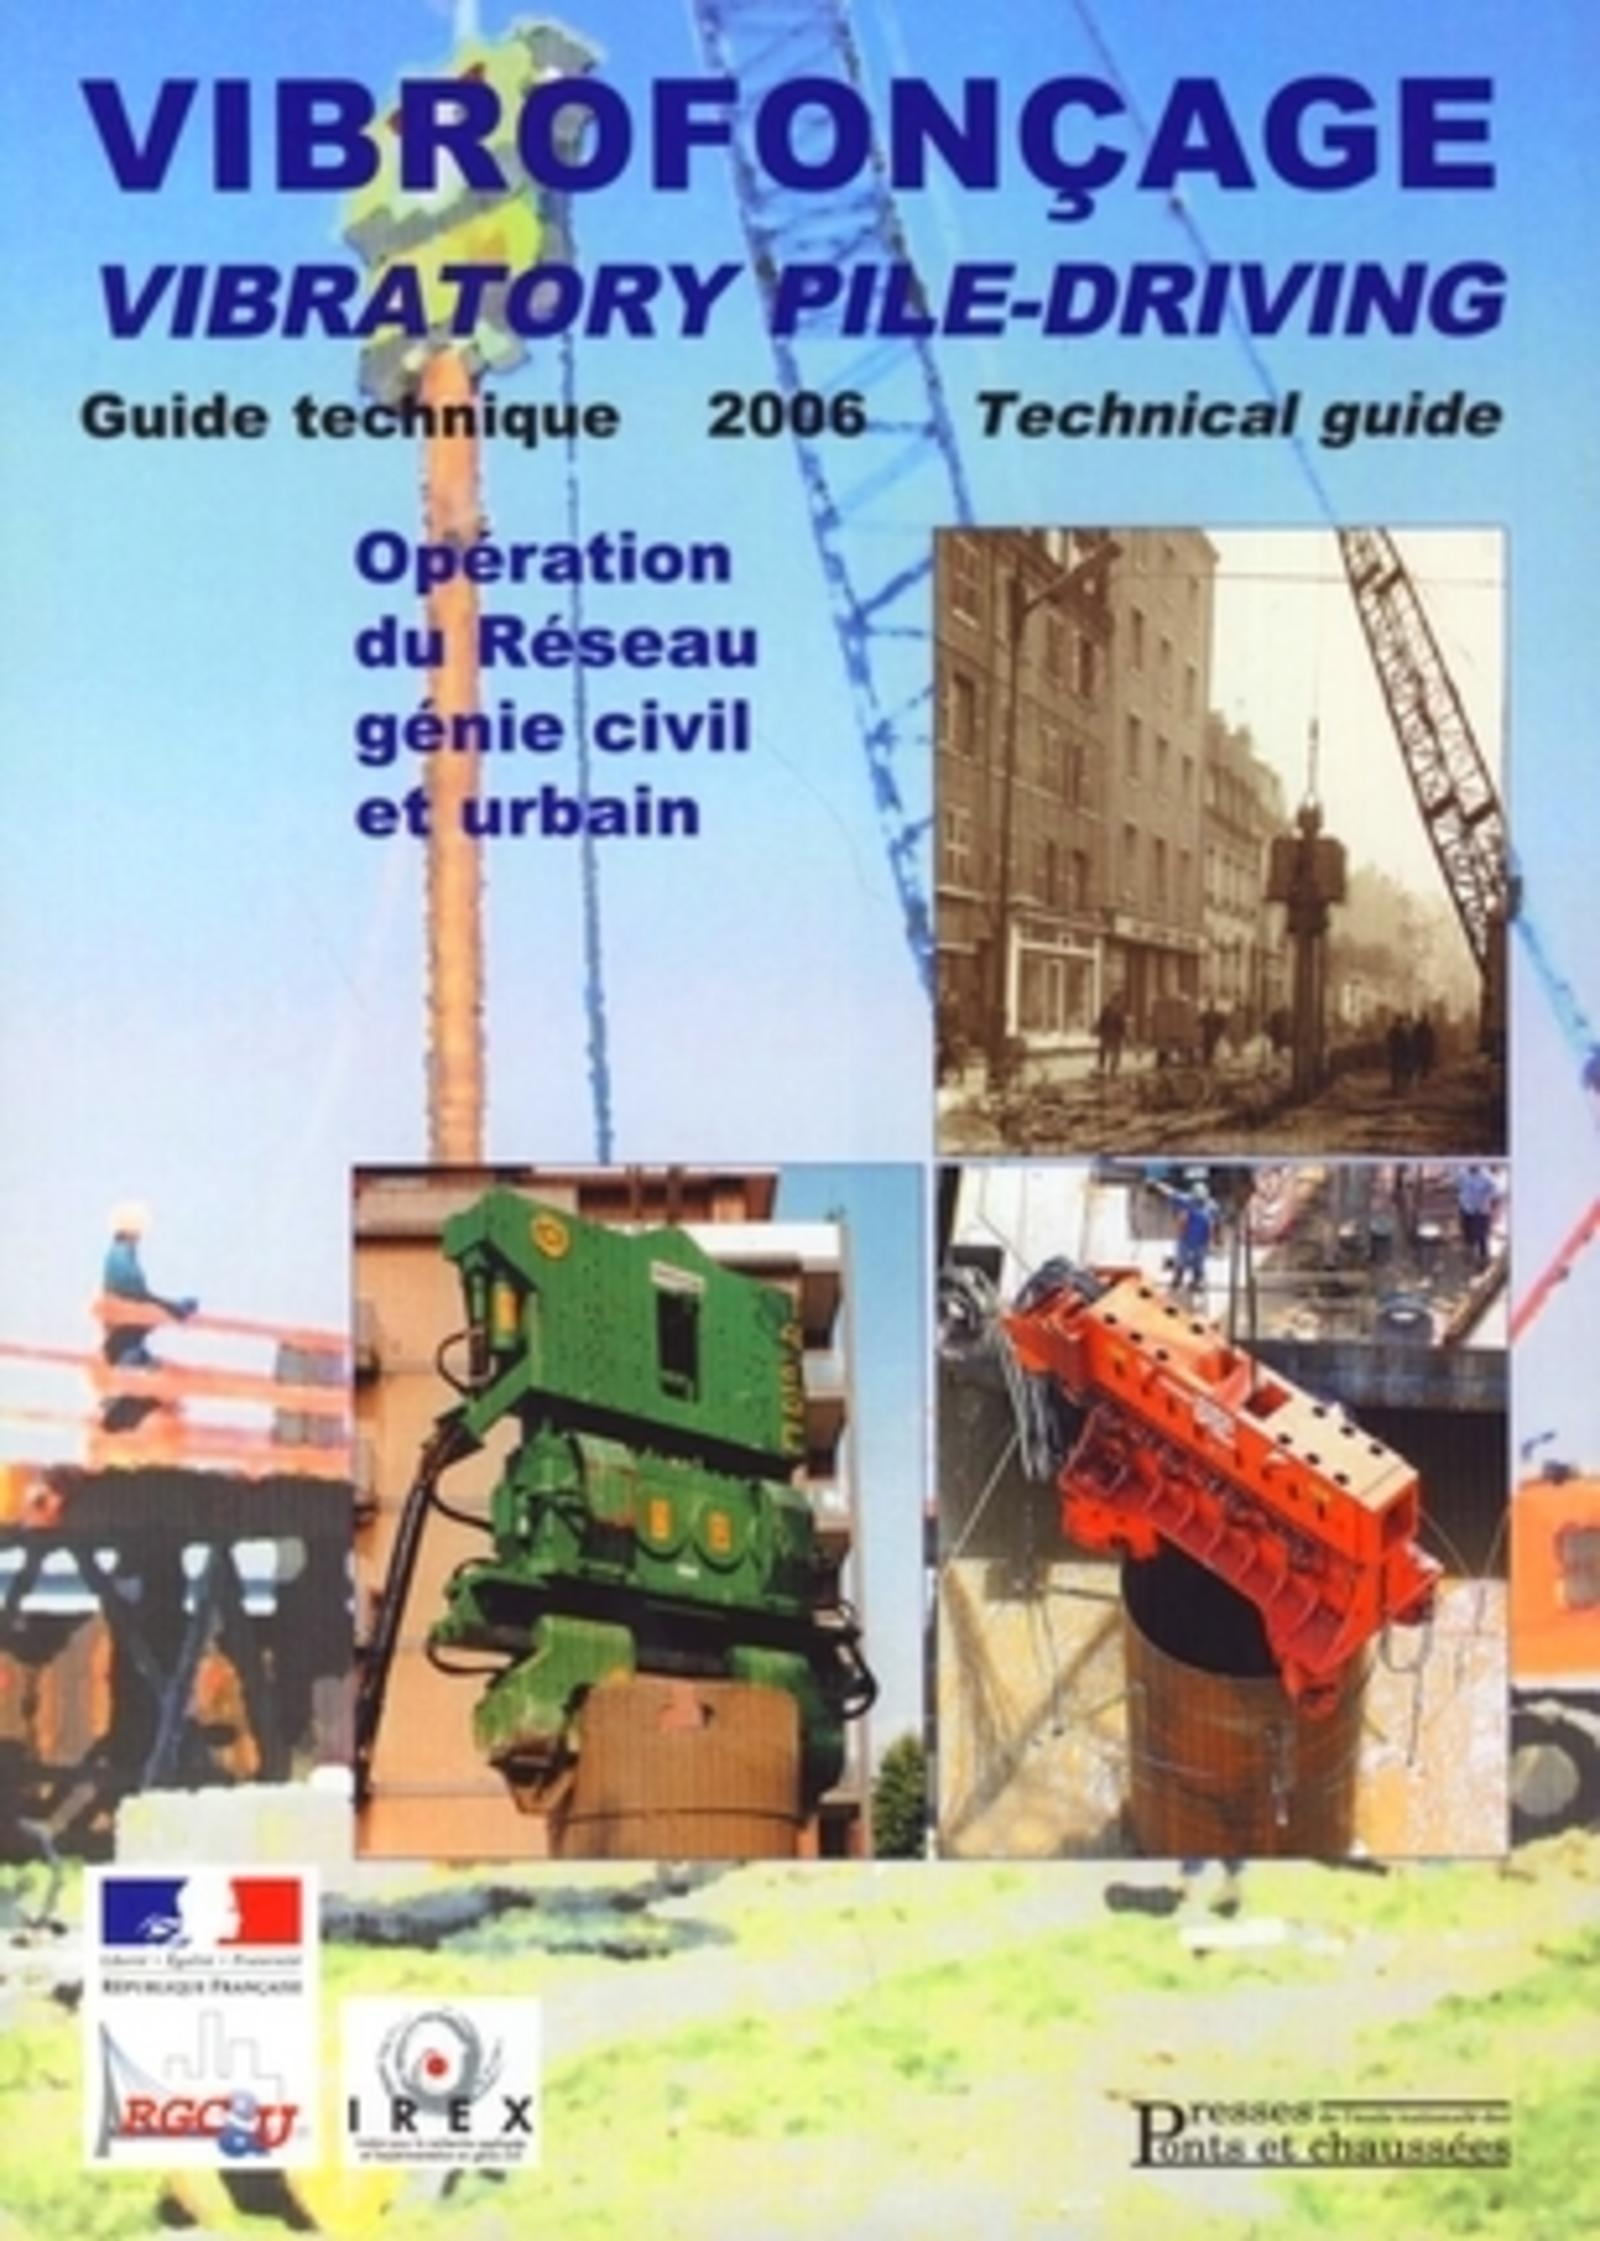 VIBROFONCAGE. GUIDE TECHNIQUE 2006 AVEC CD-ROM OPERATION DU RESEAU GENIE CIVIL E - VIBRATORY PILE-DR